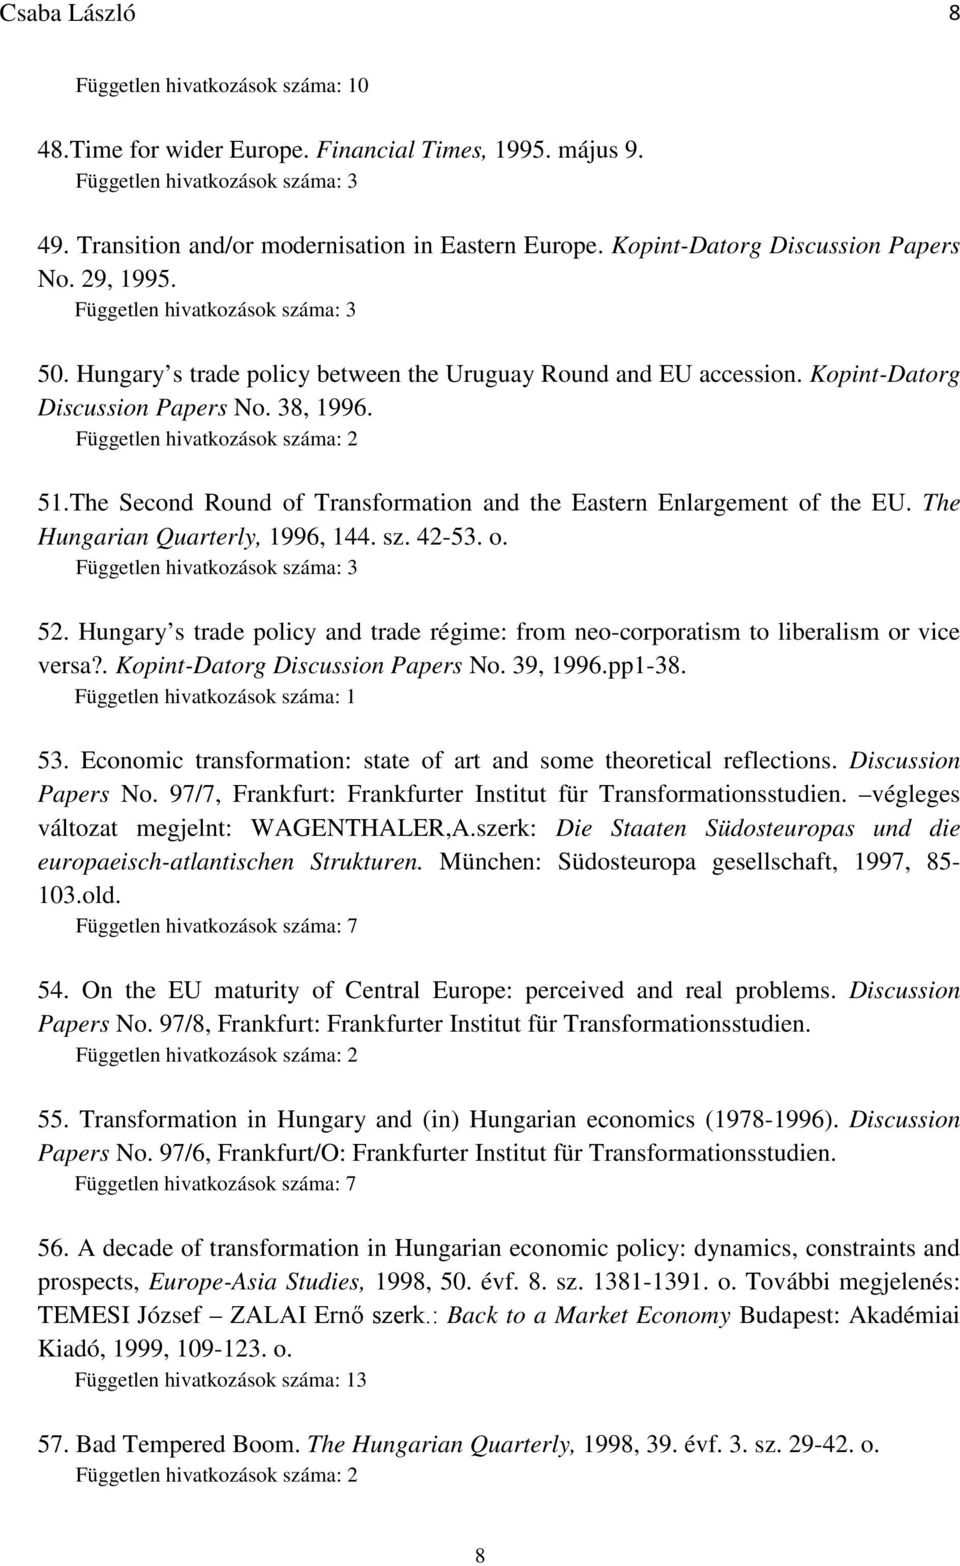 The Hungarian Quarterly, 1996, 144. sz. 42-53. o. 52. Hungary s trade policy and trade régime: from neo-corporatism to liberalism or vice versa?. Kopint-Datorg Discussion Papers No. 39, 1996.pp1-38.